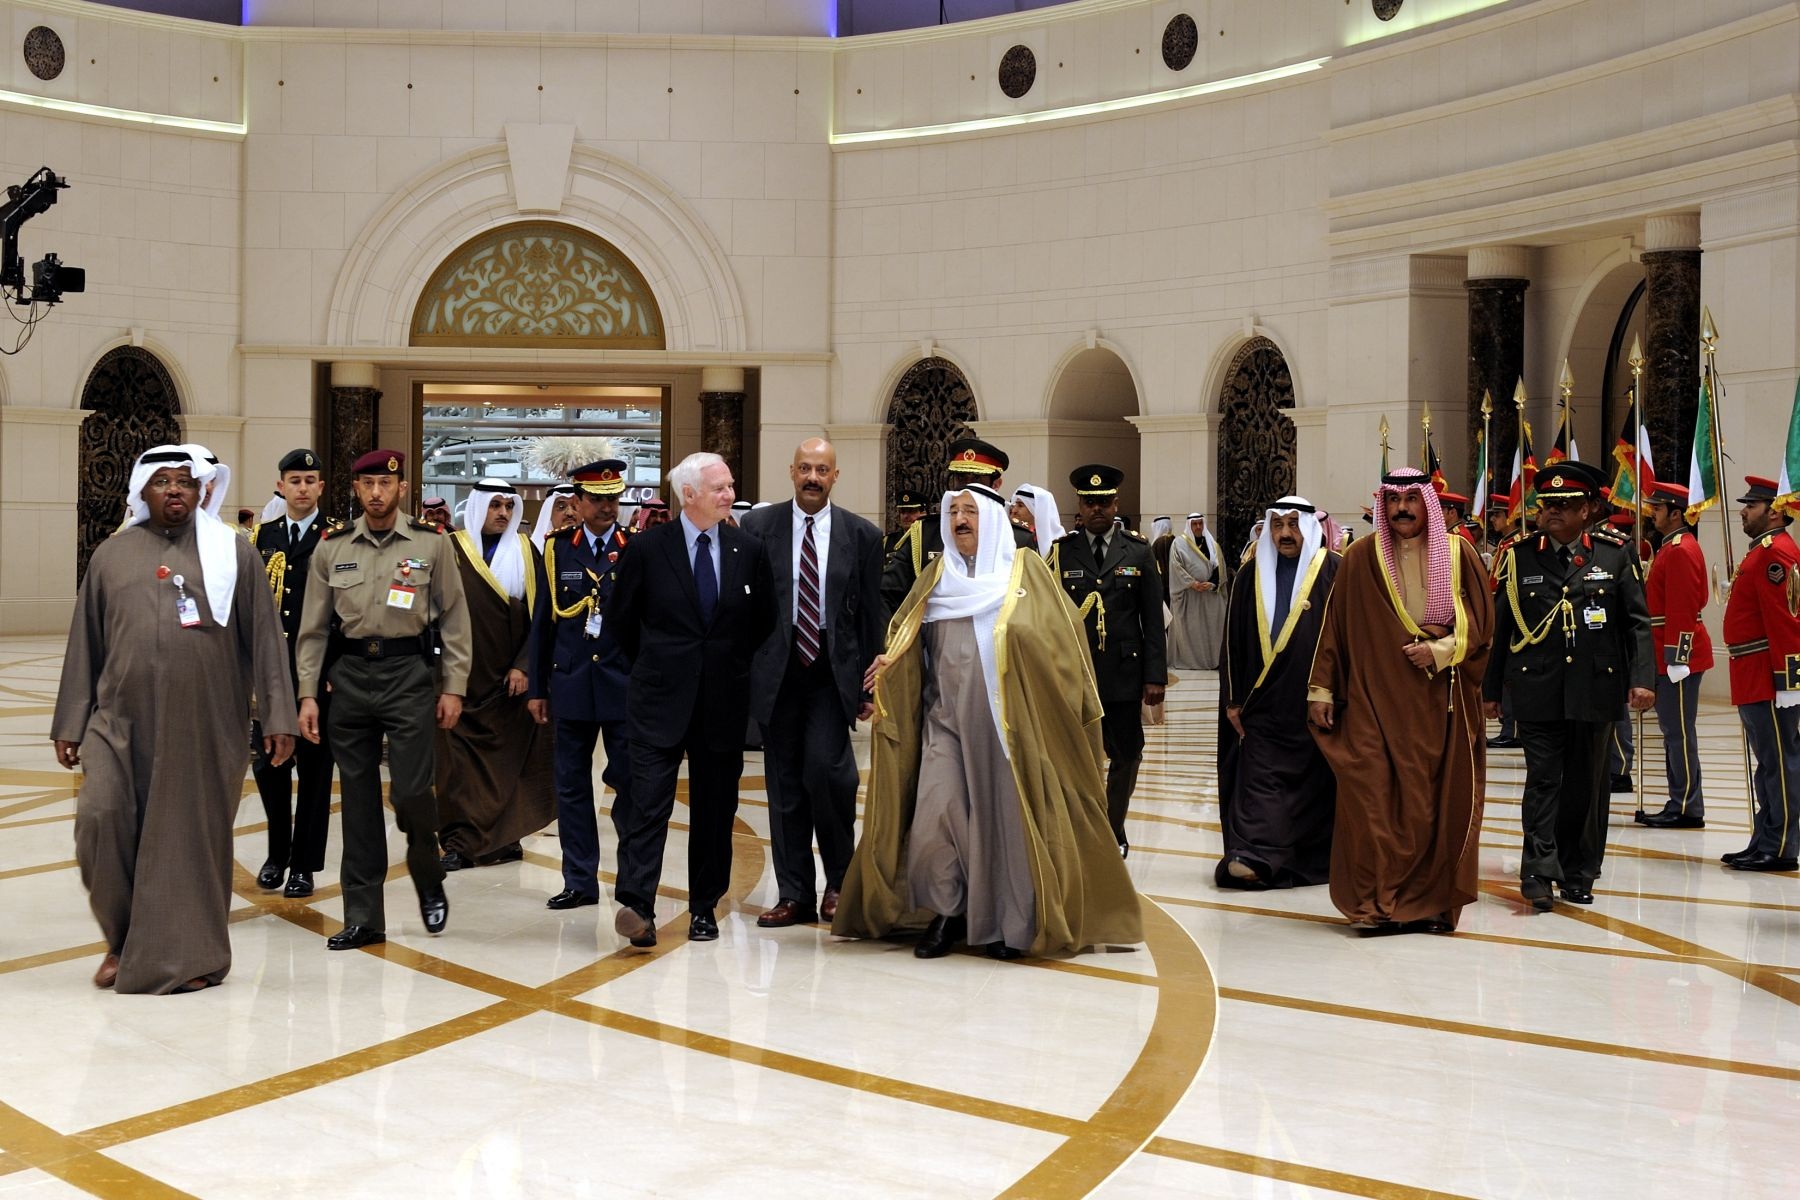 His Excellency is accompanied by His Highness Sheikh Sabah Al-Ahmad Al-Jaber Al-Sabah, the Amir of Kuwait, during the official welcoming ceremony with Guard of Honor at the Amiri Air Terminal, Kuwait International Airport.